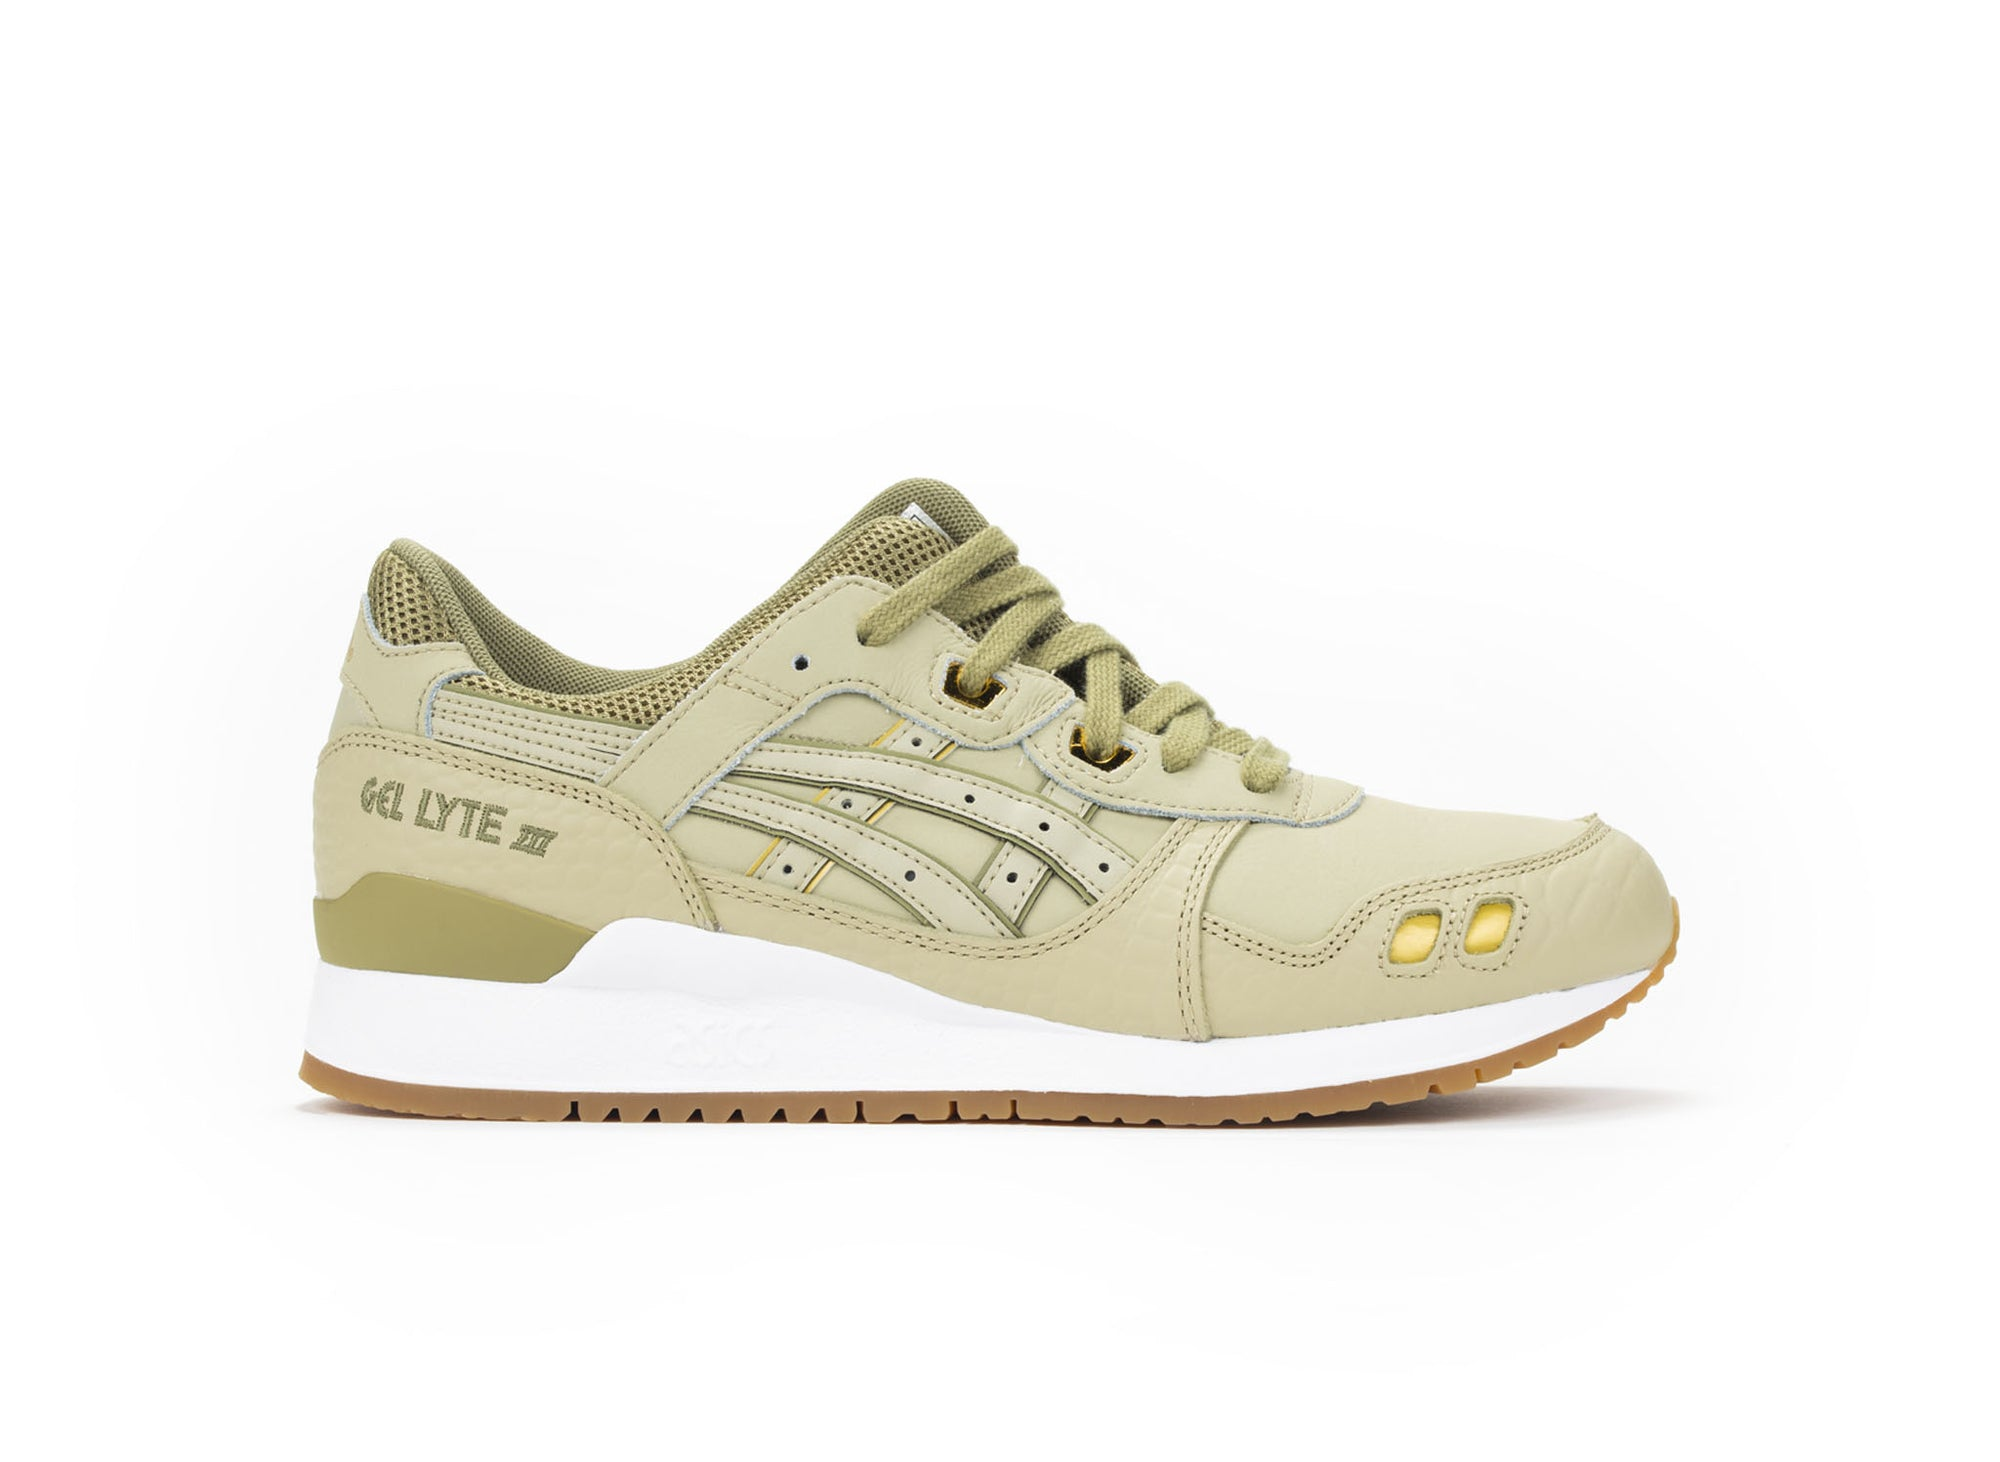 competitive price 93844 2d92b ASICS GEL LYTE III